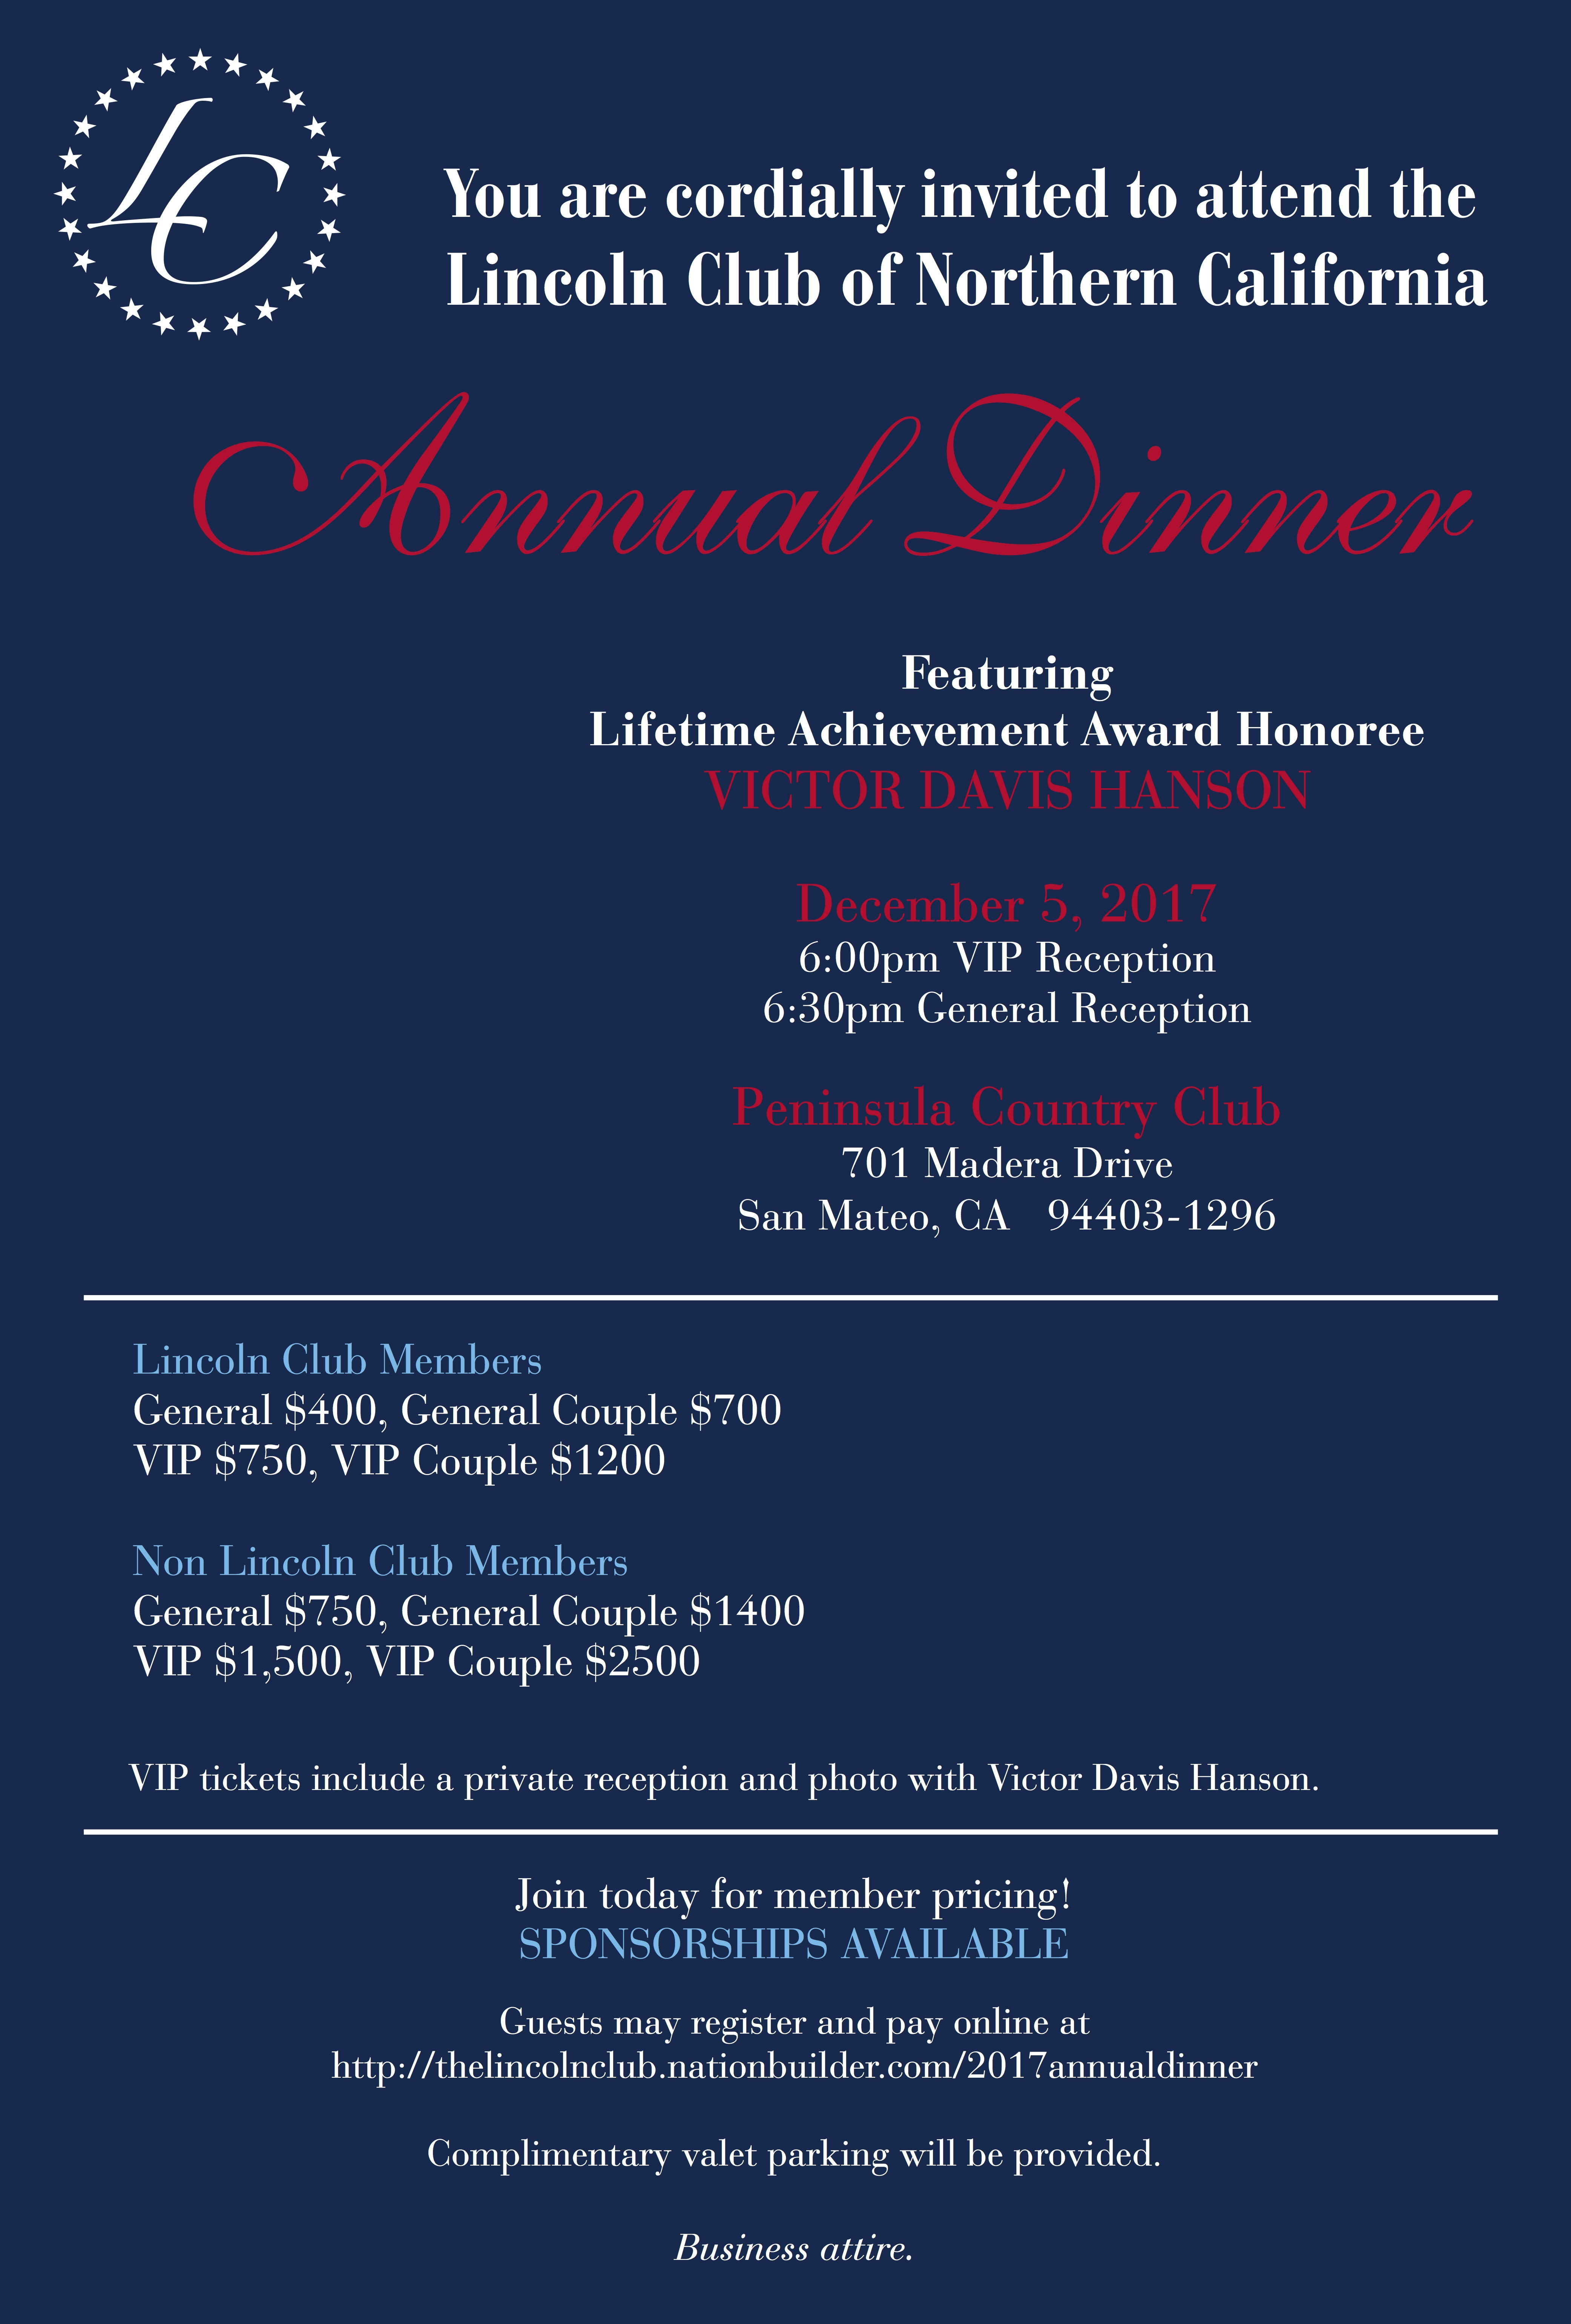 2017_Lincoln_Club_Annual_Dinner_YOURE_INVITED.jpg